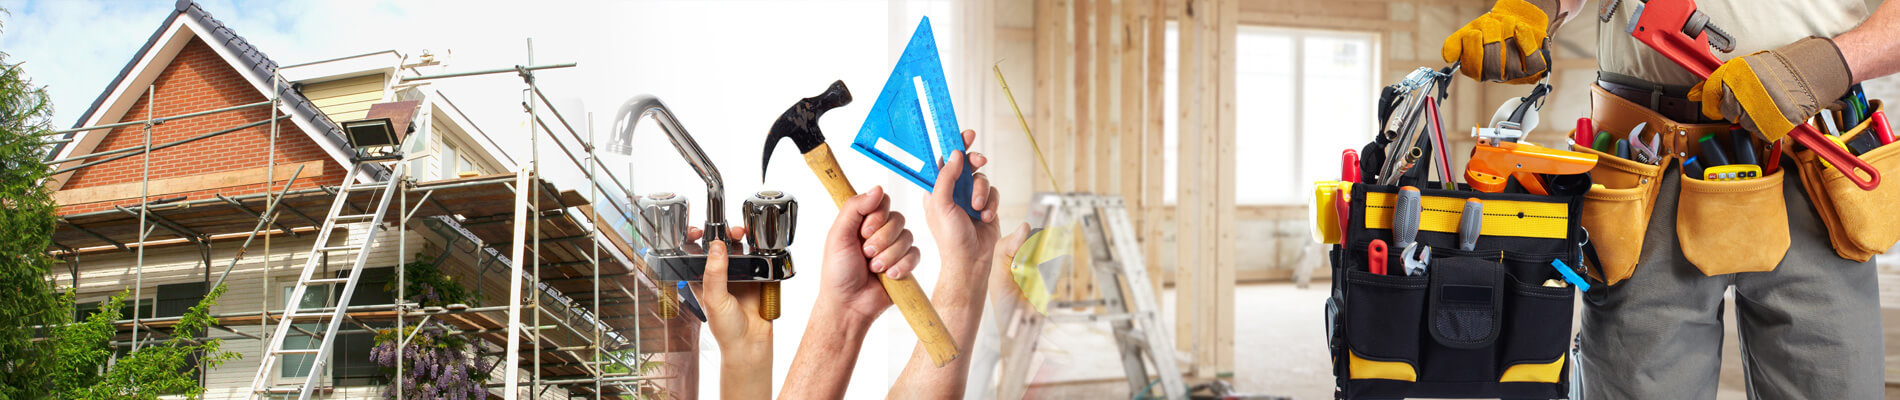 House renovation service in kilkenny local services in for House renovation services